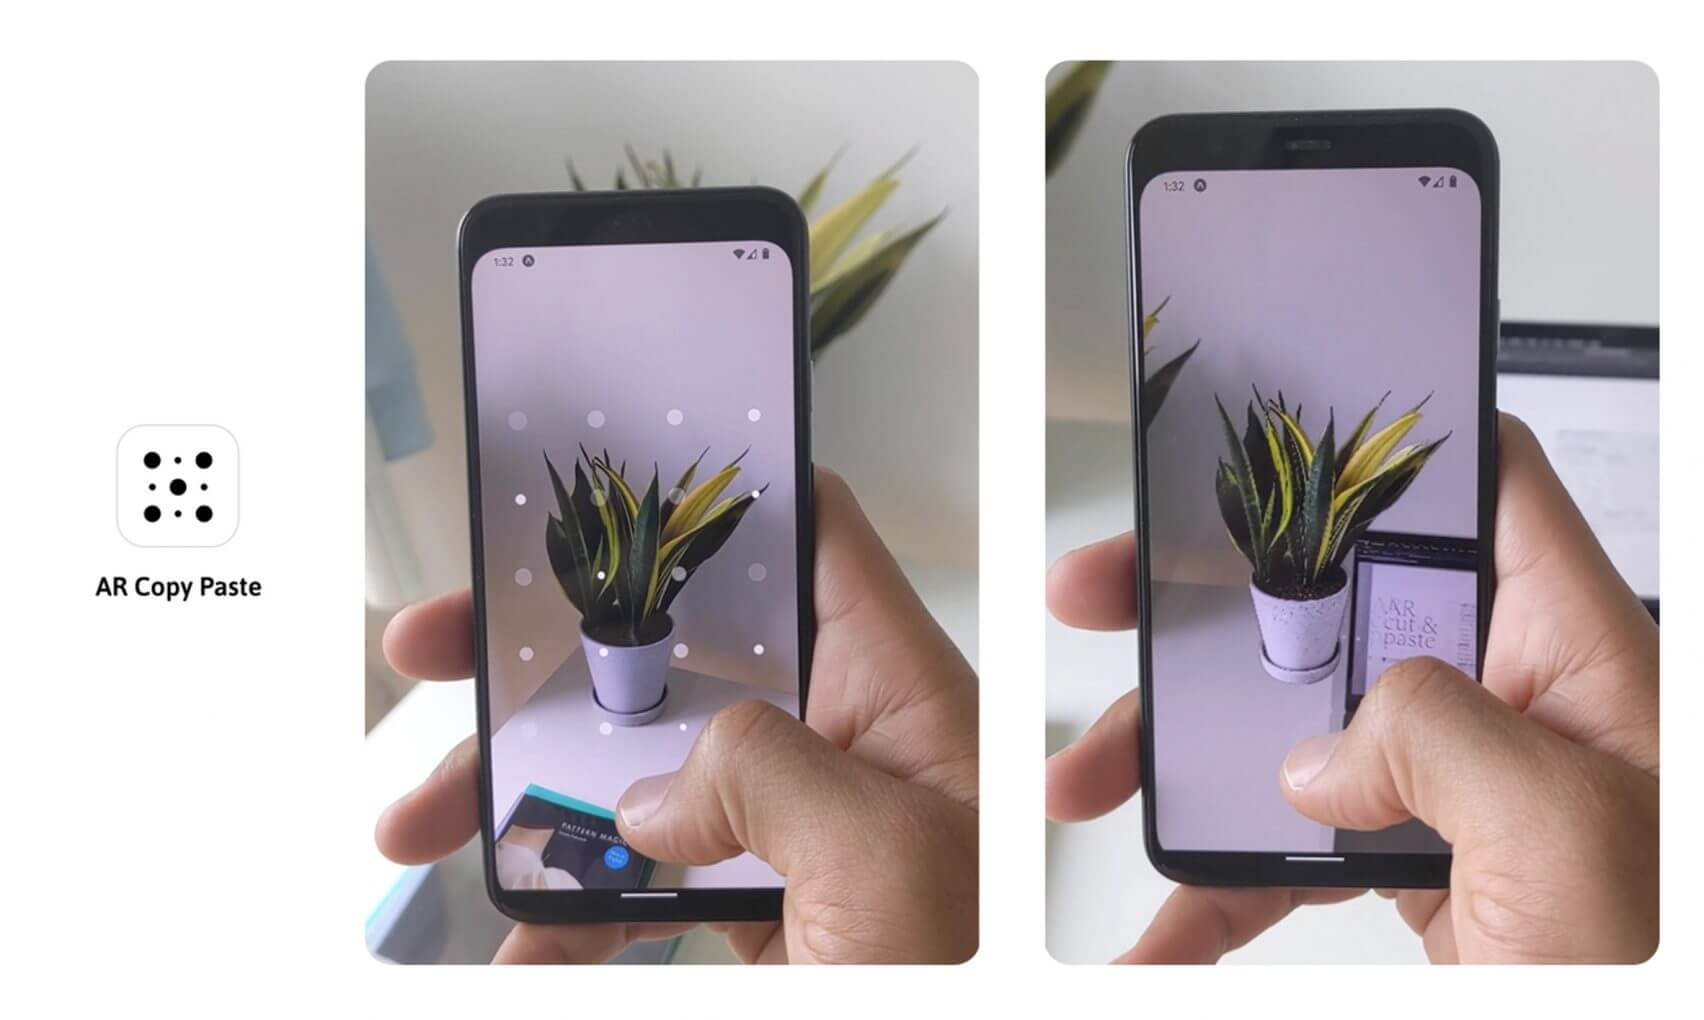 With This AR Copy Paste Tool You Could Instantly Place Objects Pics Into A Computer